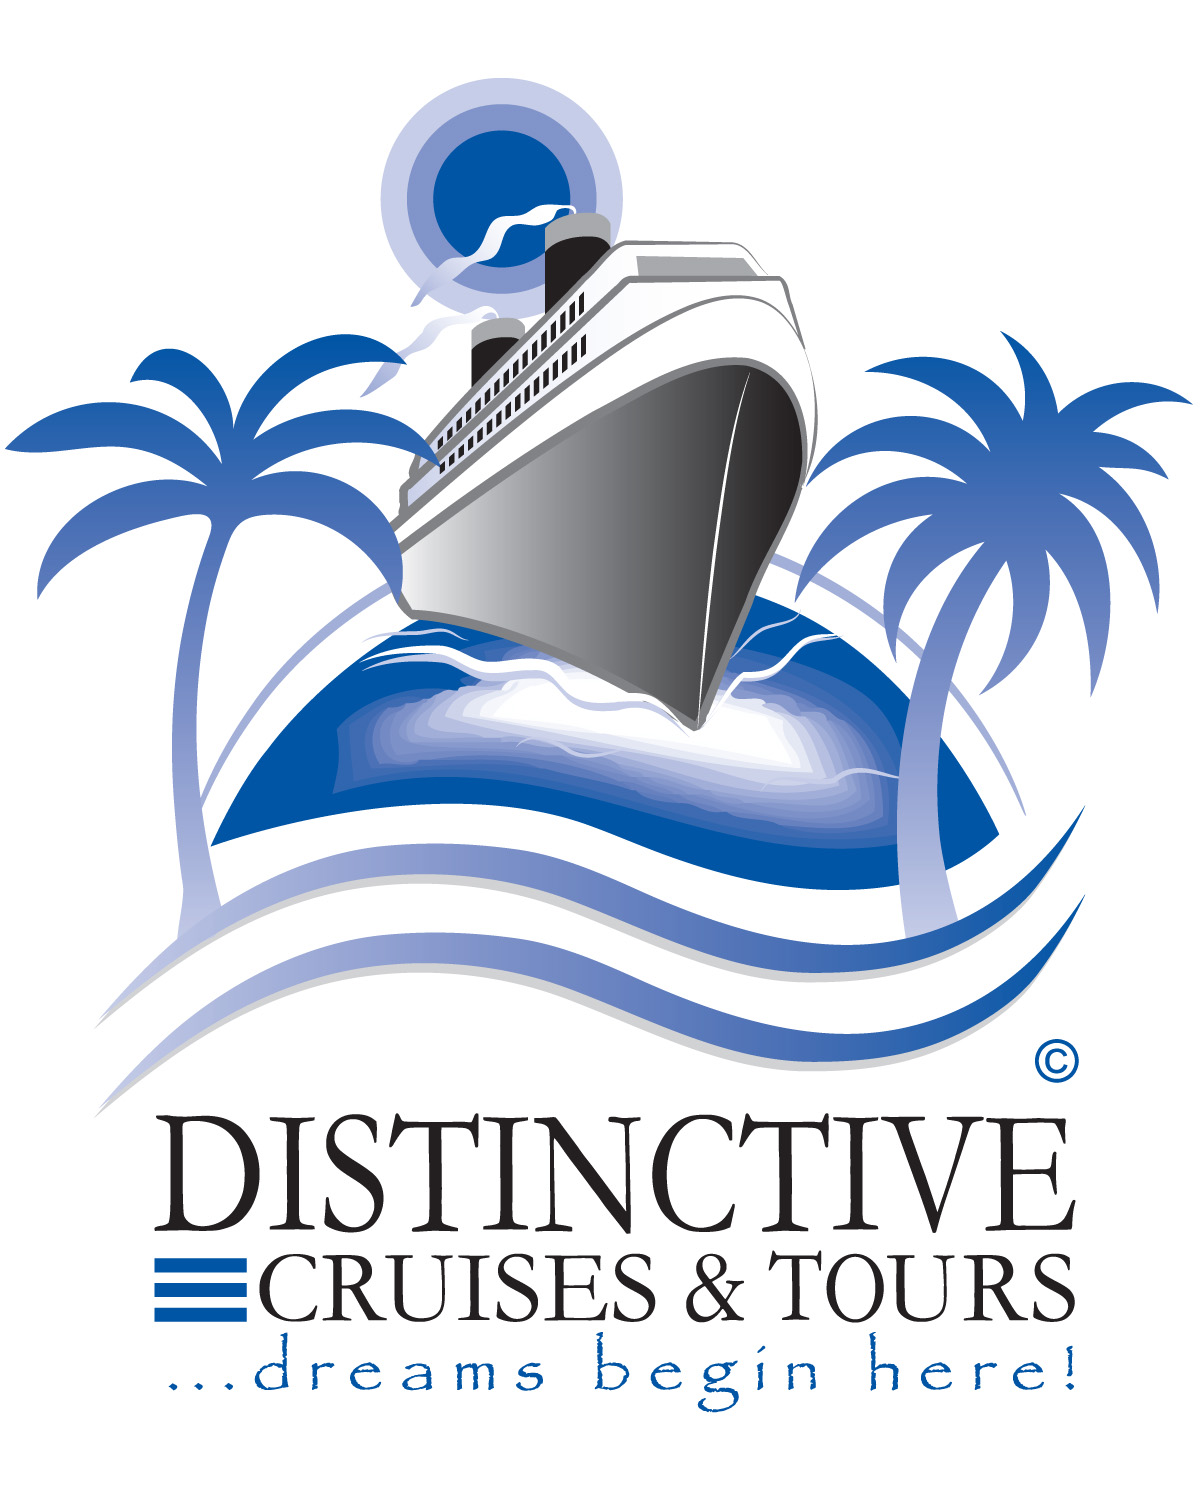 Distinctive Cruises & Tours